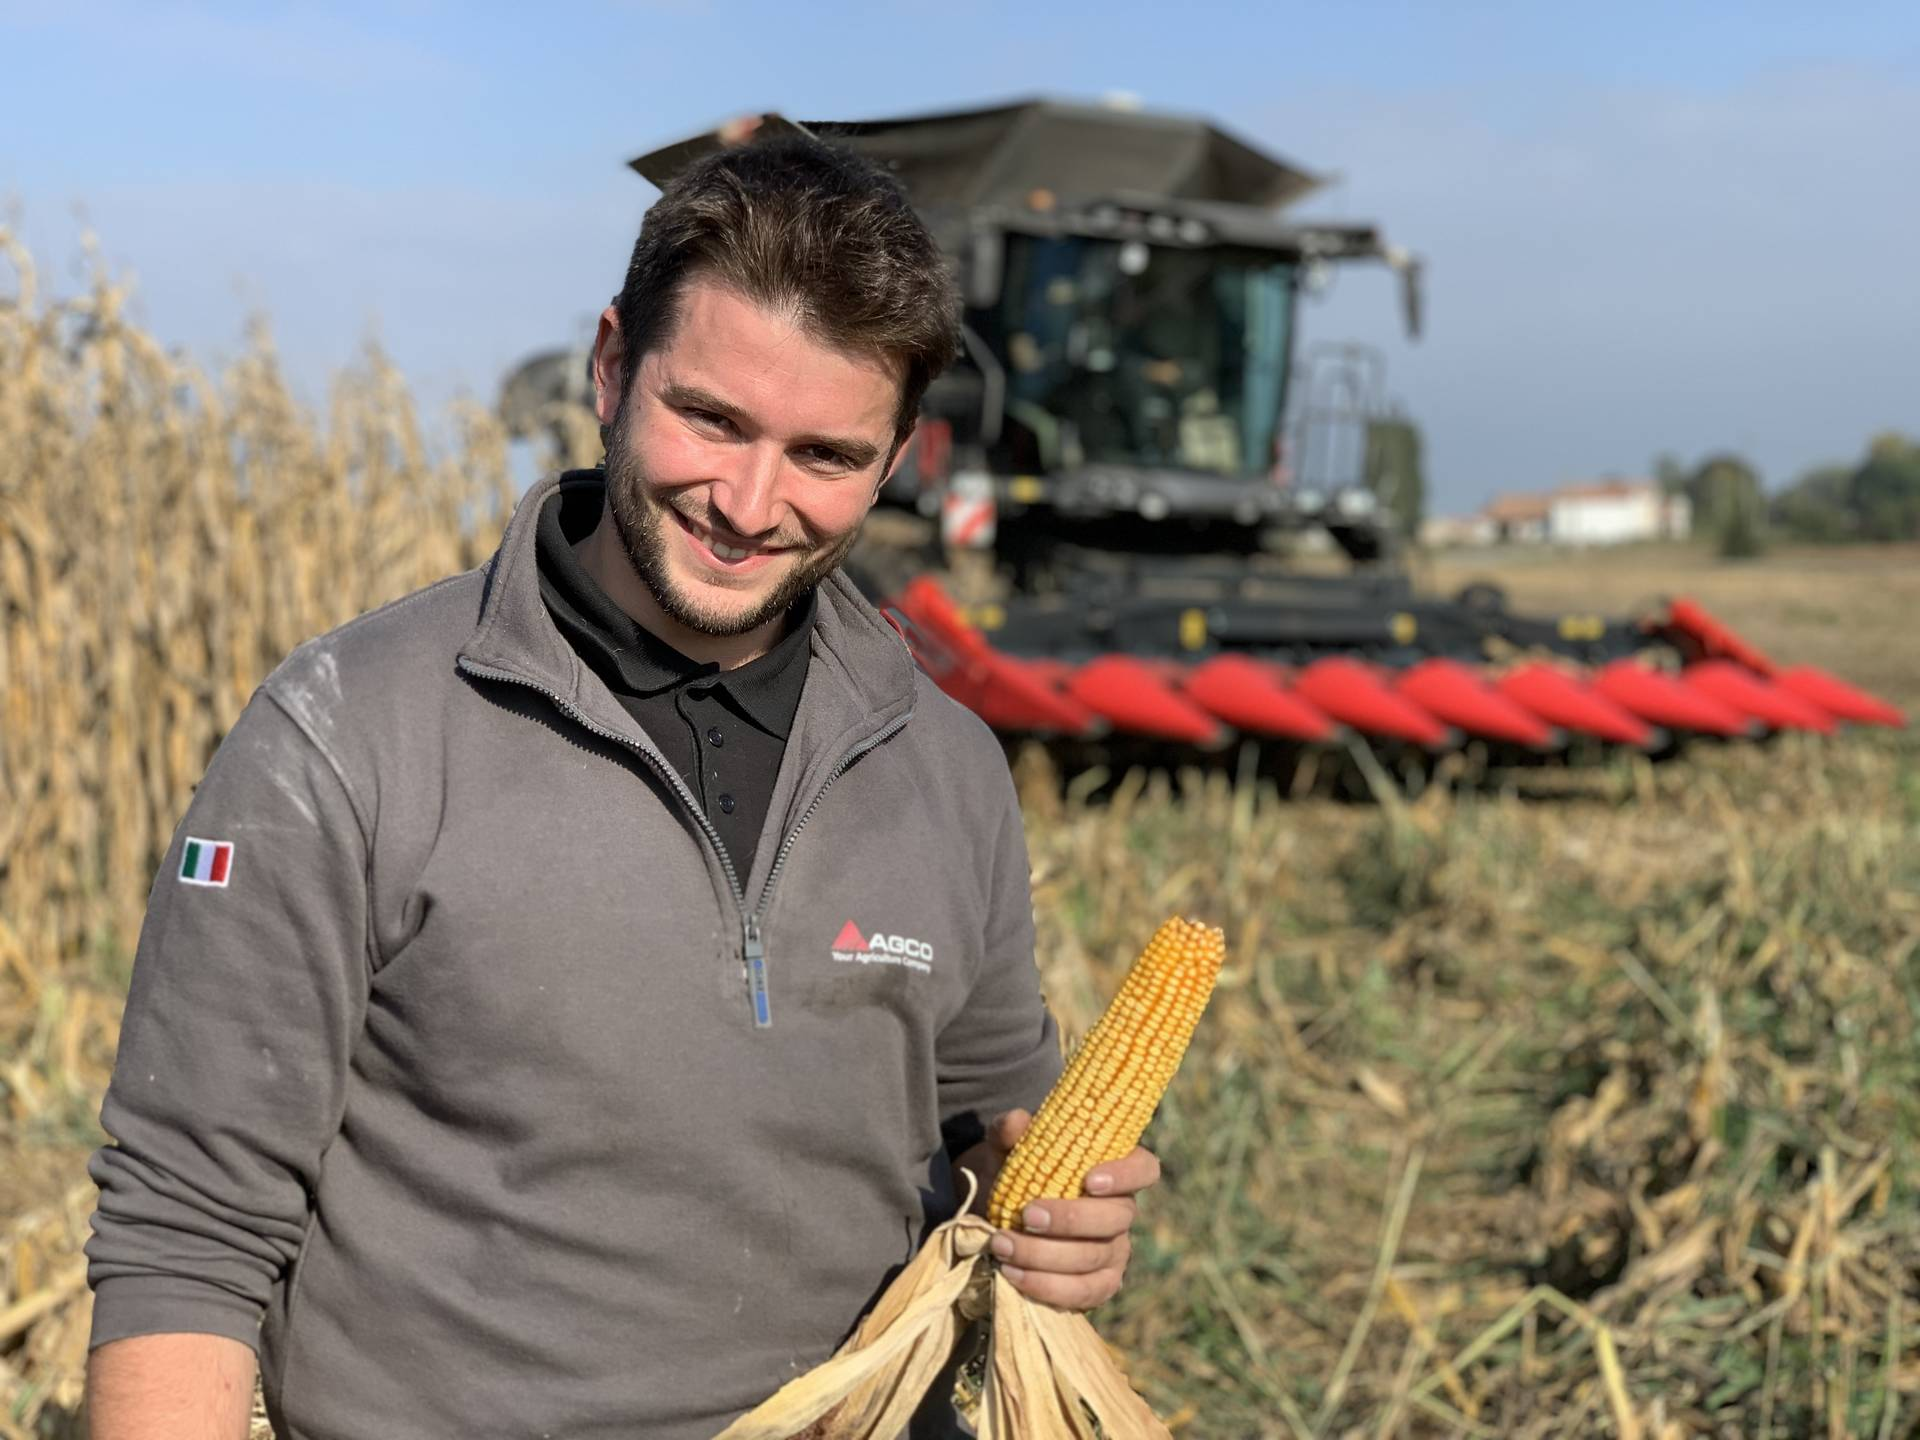 """Andrea Dal Soglio, Field Test Engineer at AGCO, Breganze, Italy: """"The joystick makes turning at the edge of the field fast and easy. With the steering wheel gone you also have more room available to position your seat as you find most comfortable."""""""